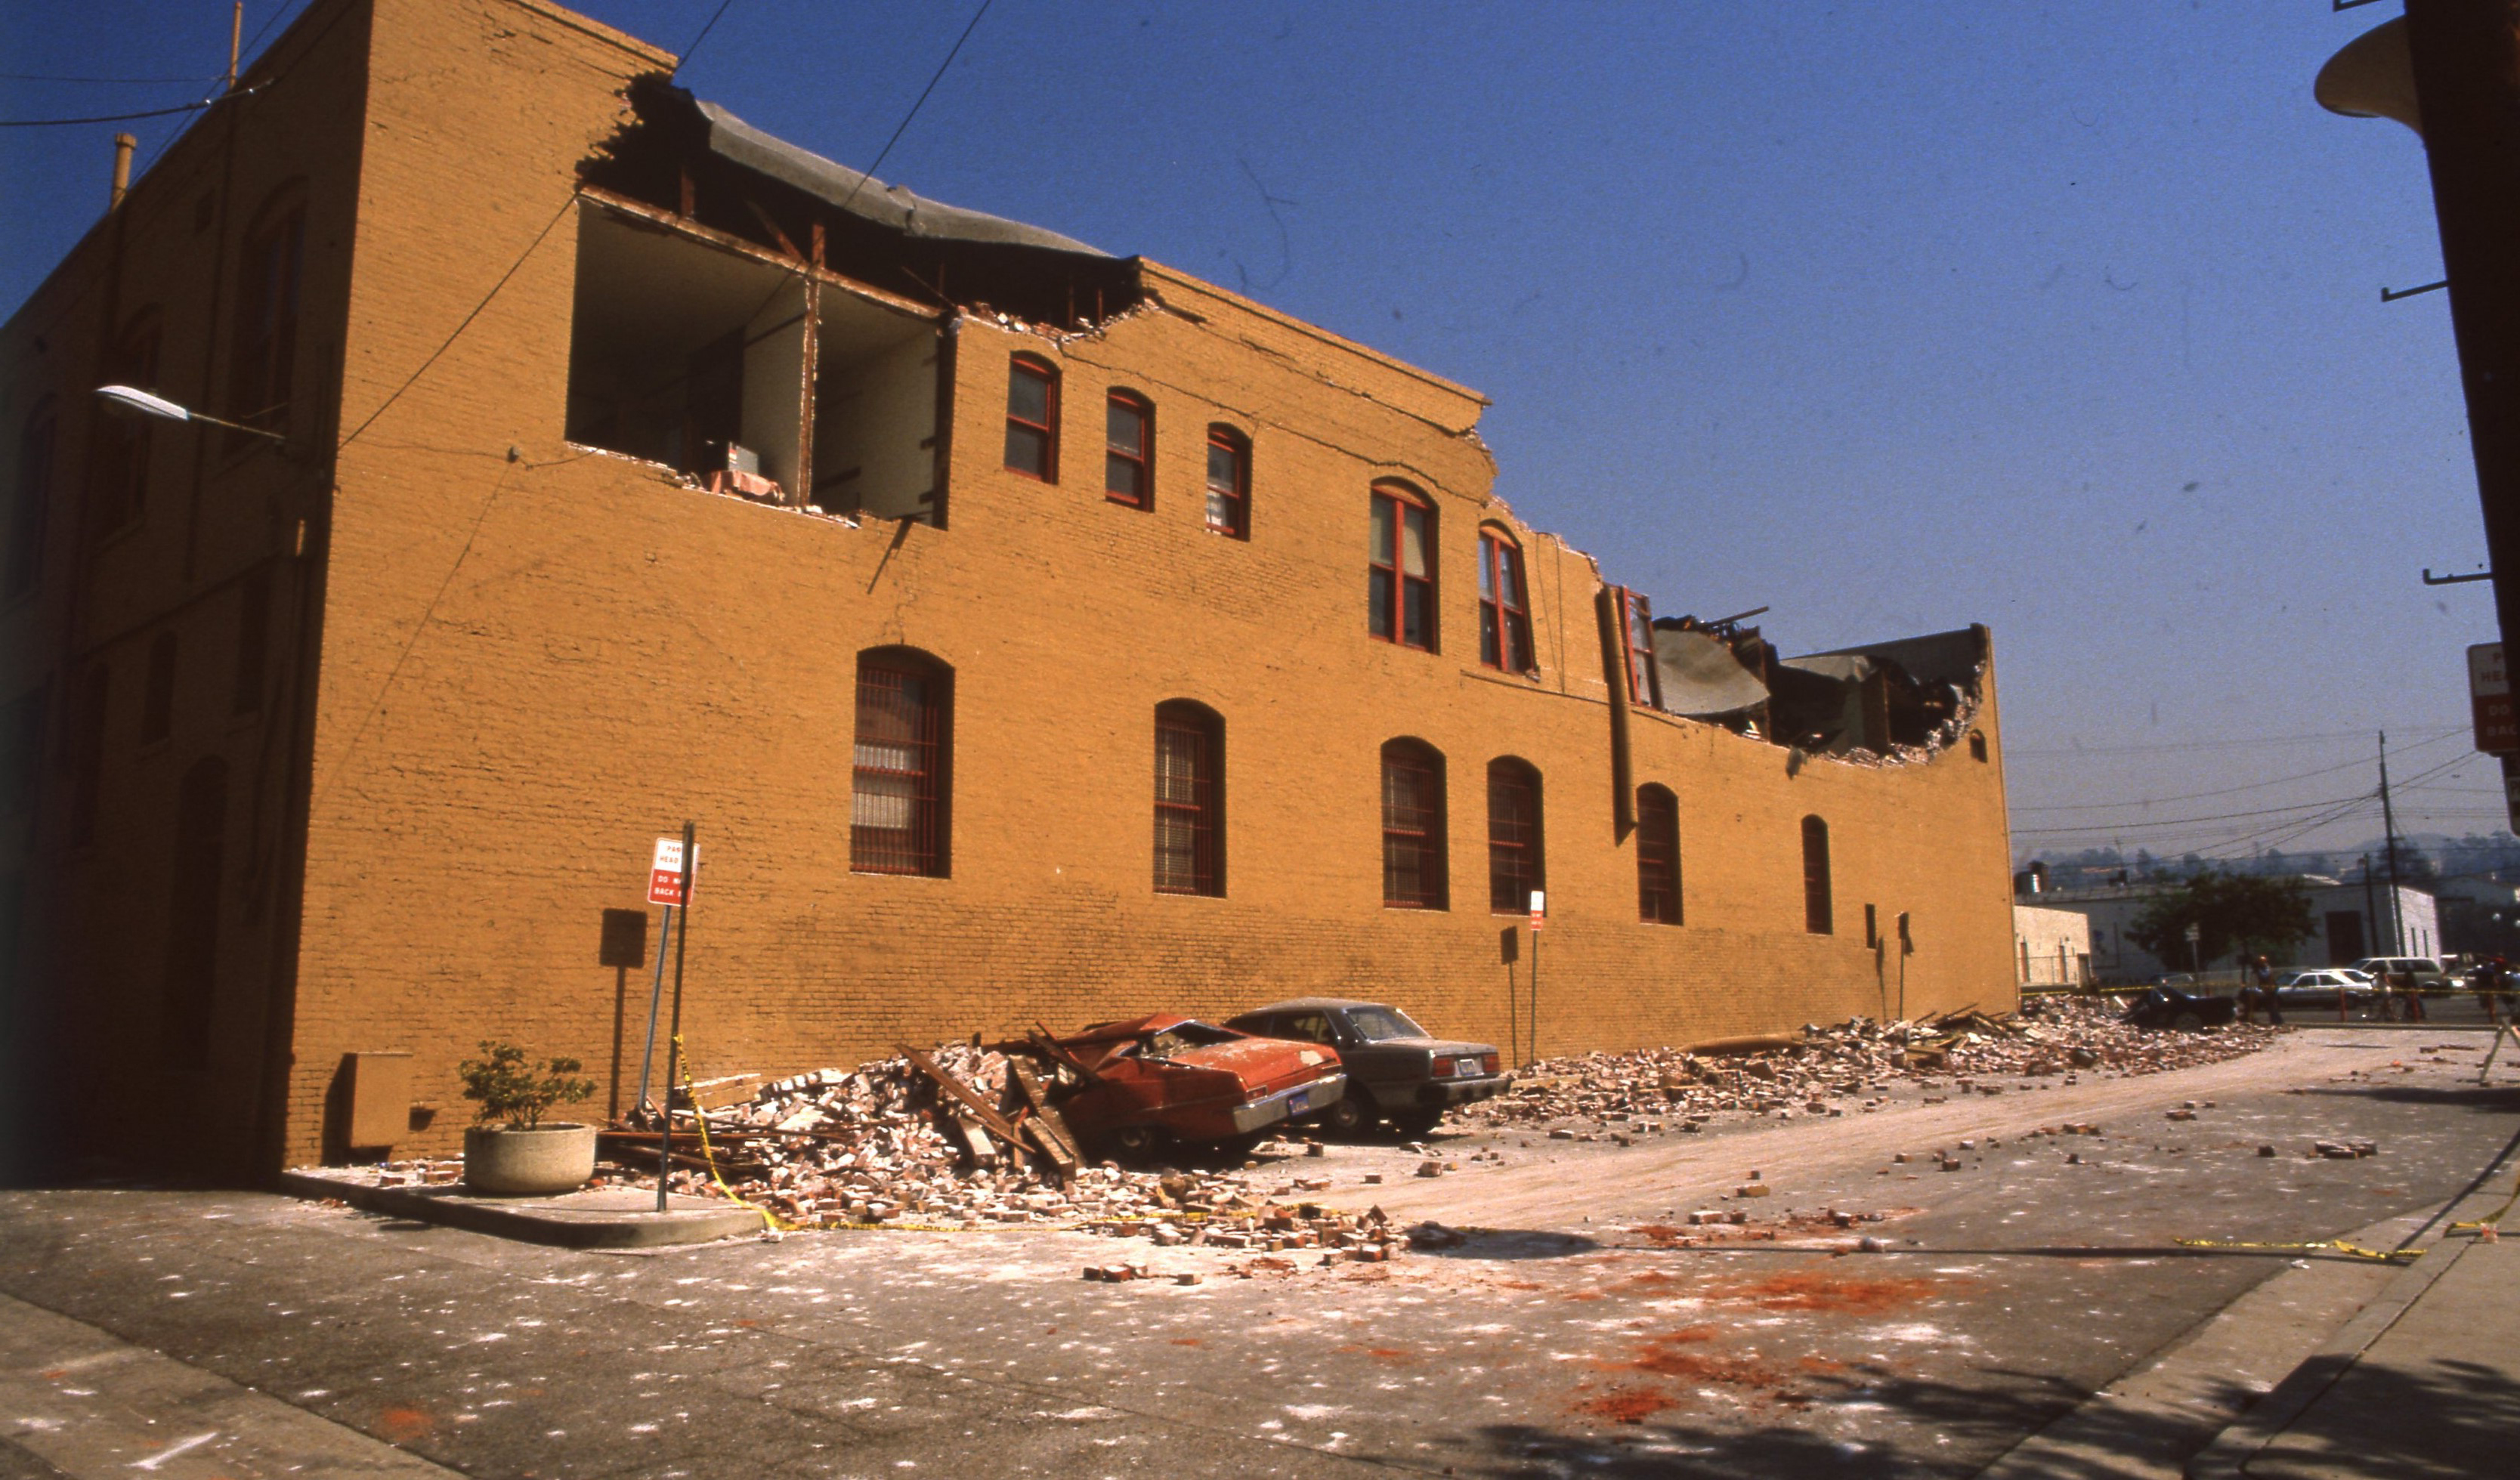 Store Banne Z Wave Photos The 1987 Whittier Narrows Earthquake A Look Back On 30th